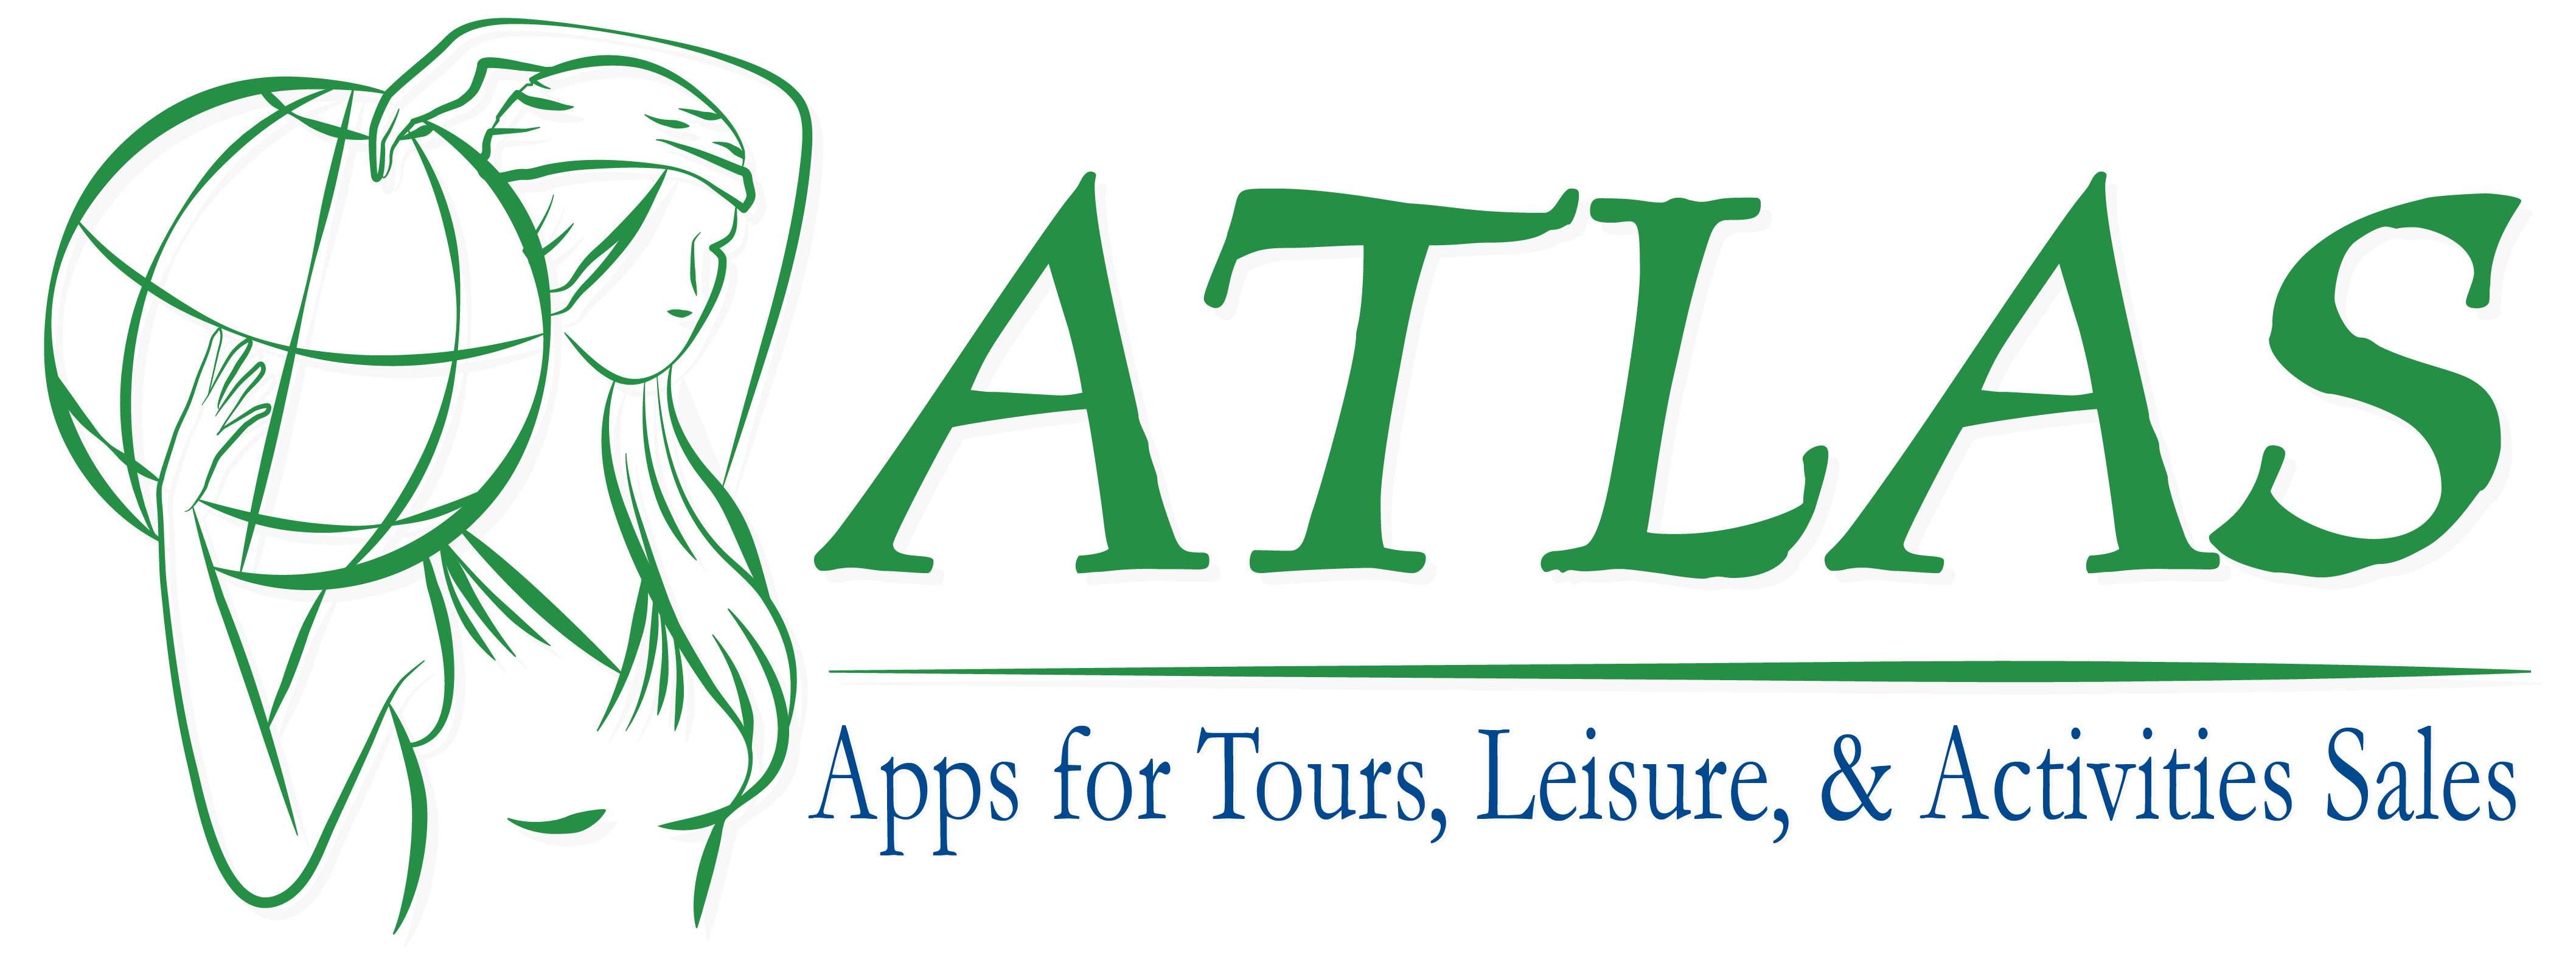 Reservation ATLAS | Apps For Tours, Leisure, & Activities Sales